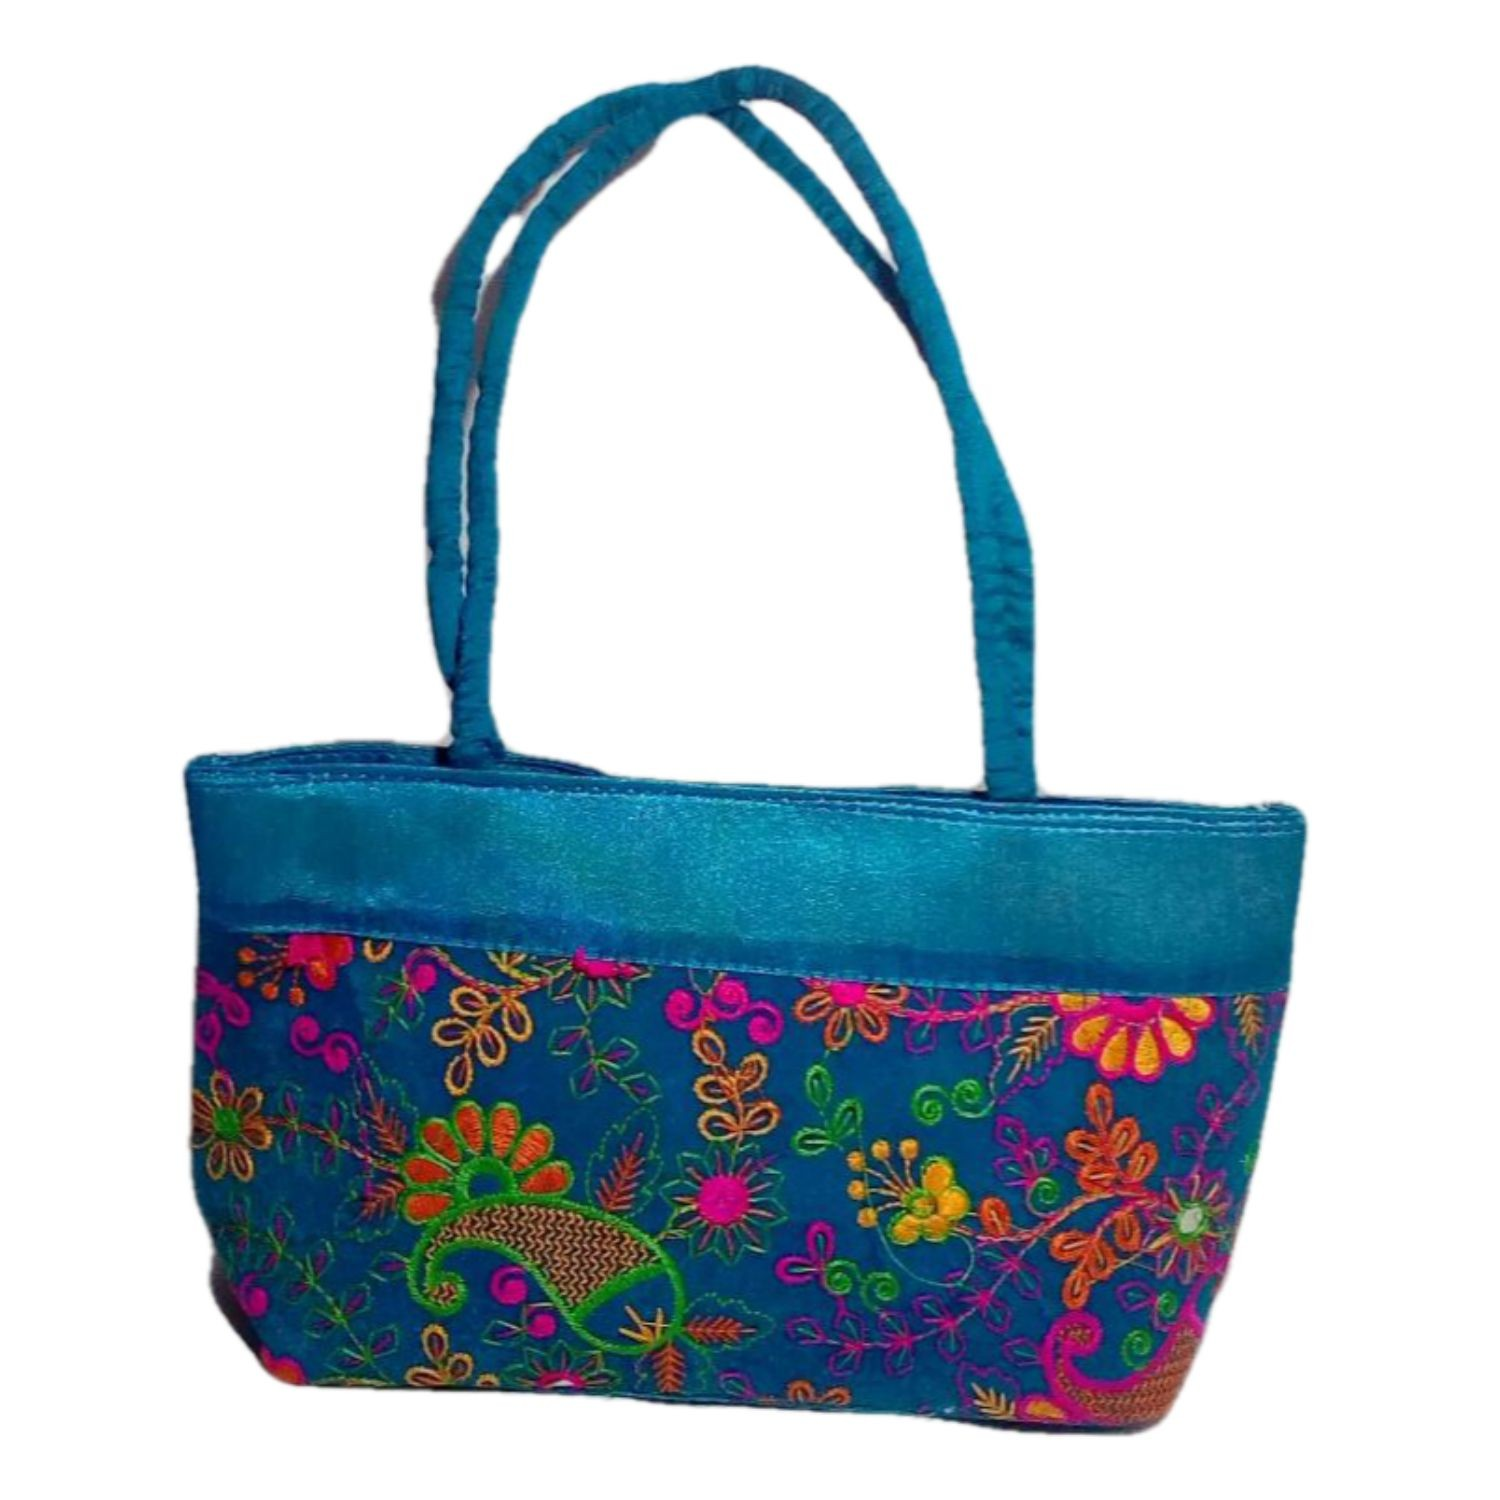 Handmade Excellent Blue Genuine Shoulder Bag  with embroidery work  by Women Self Help Groups of Rajasthan